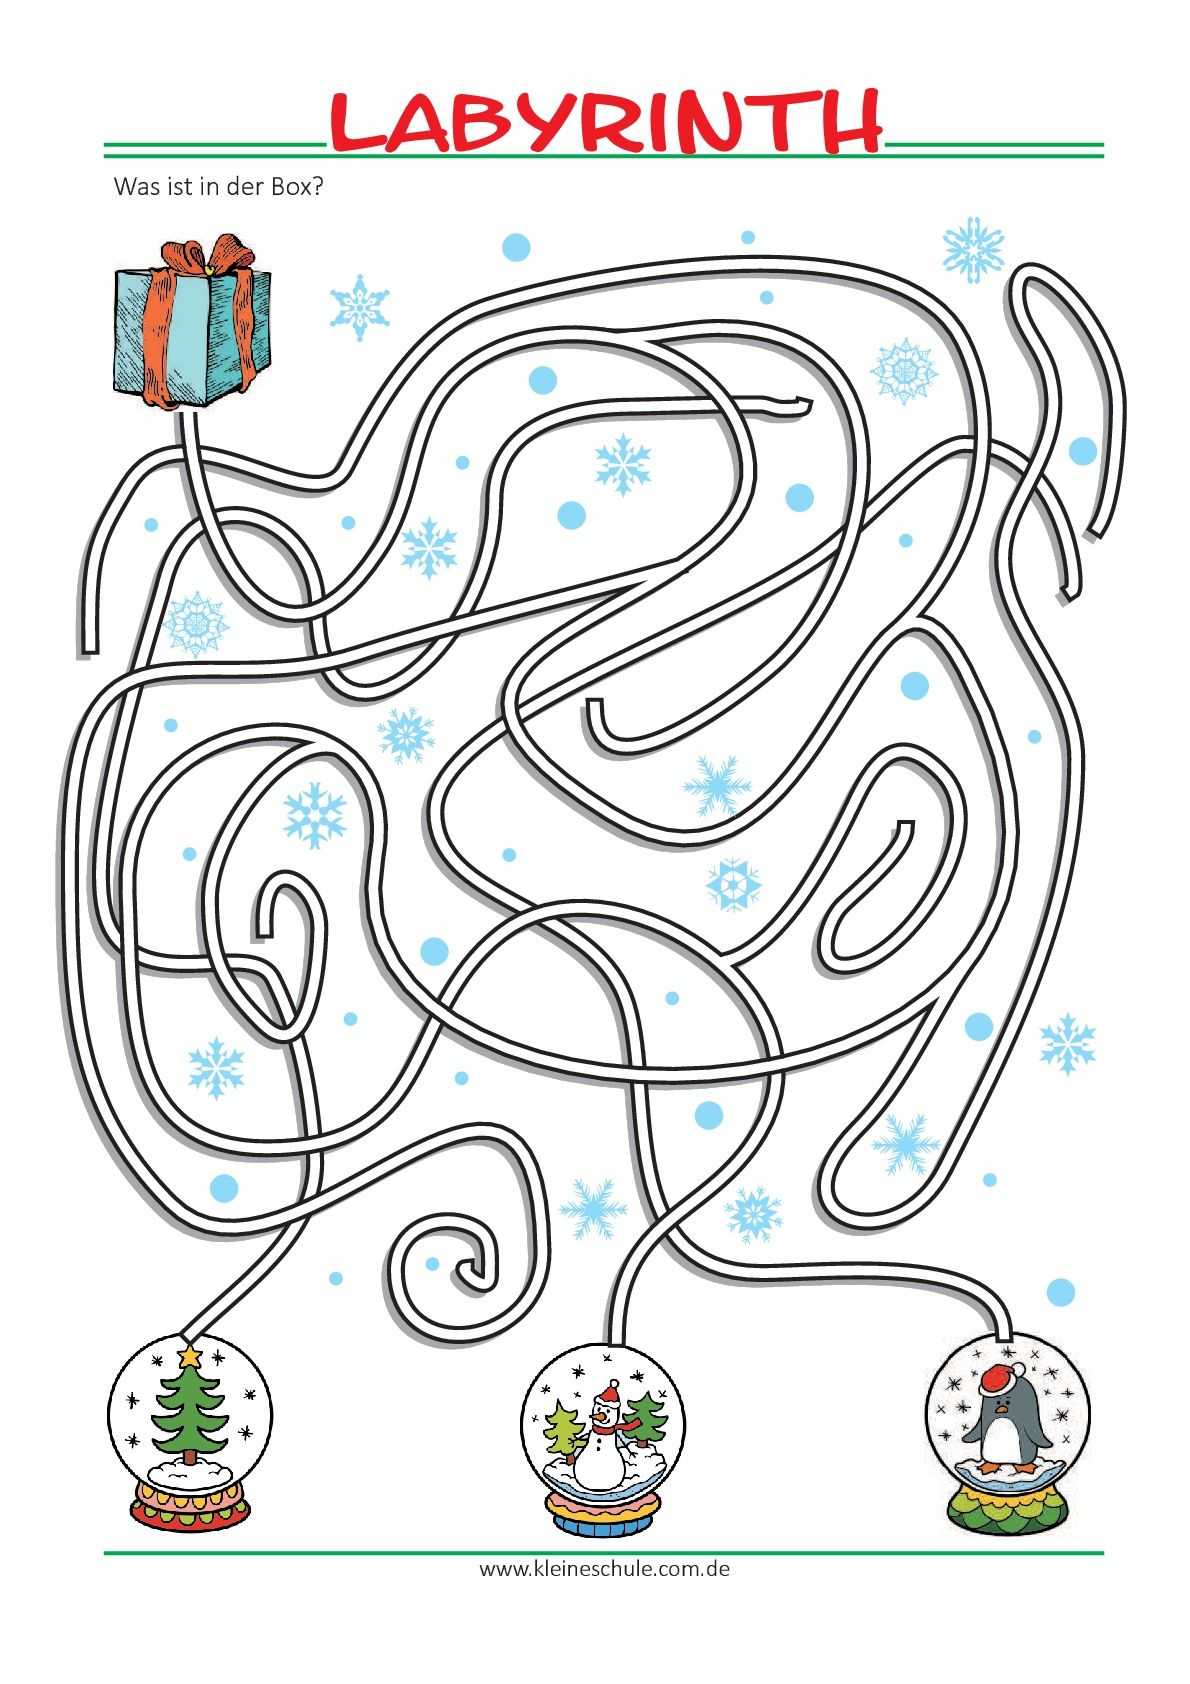 Pin by ٦٢٠٥ سعد on agamograph for kids | Mazes for kids, Mazes for